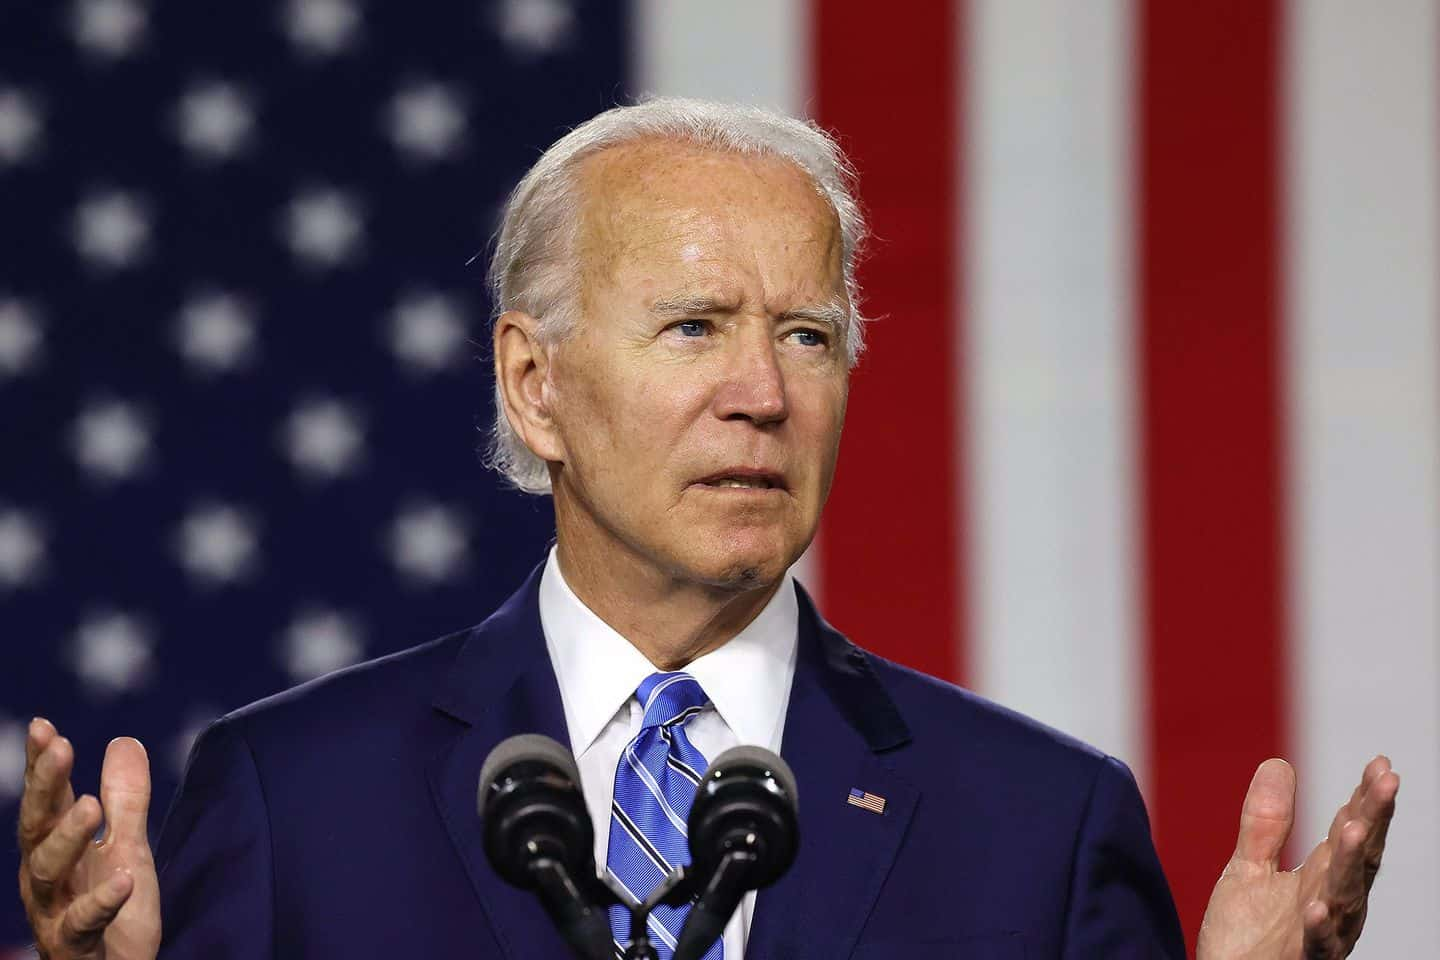 Analysts expect a Biden blowout in November